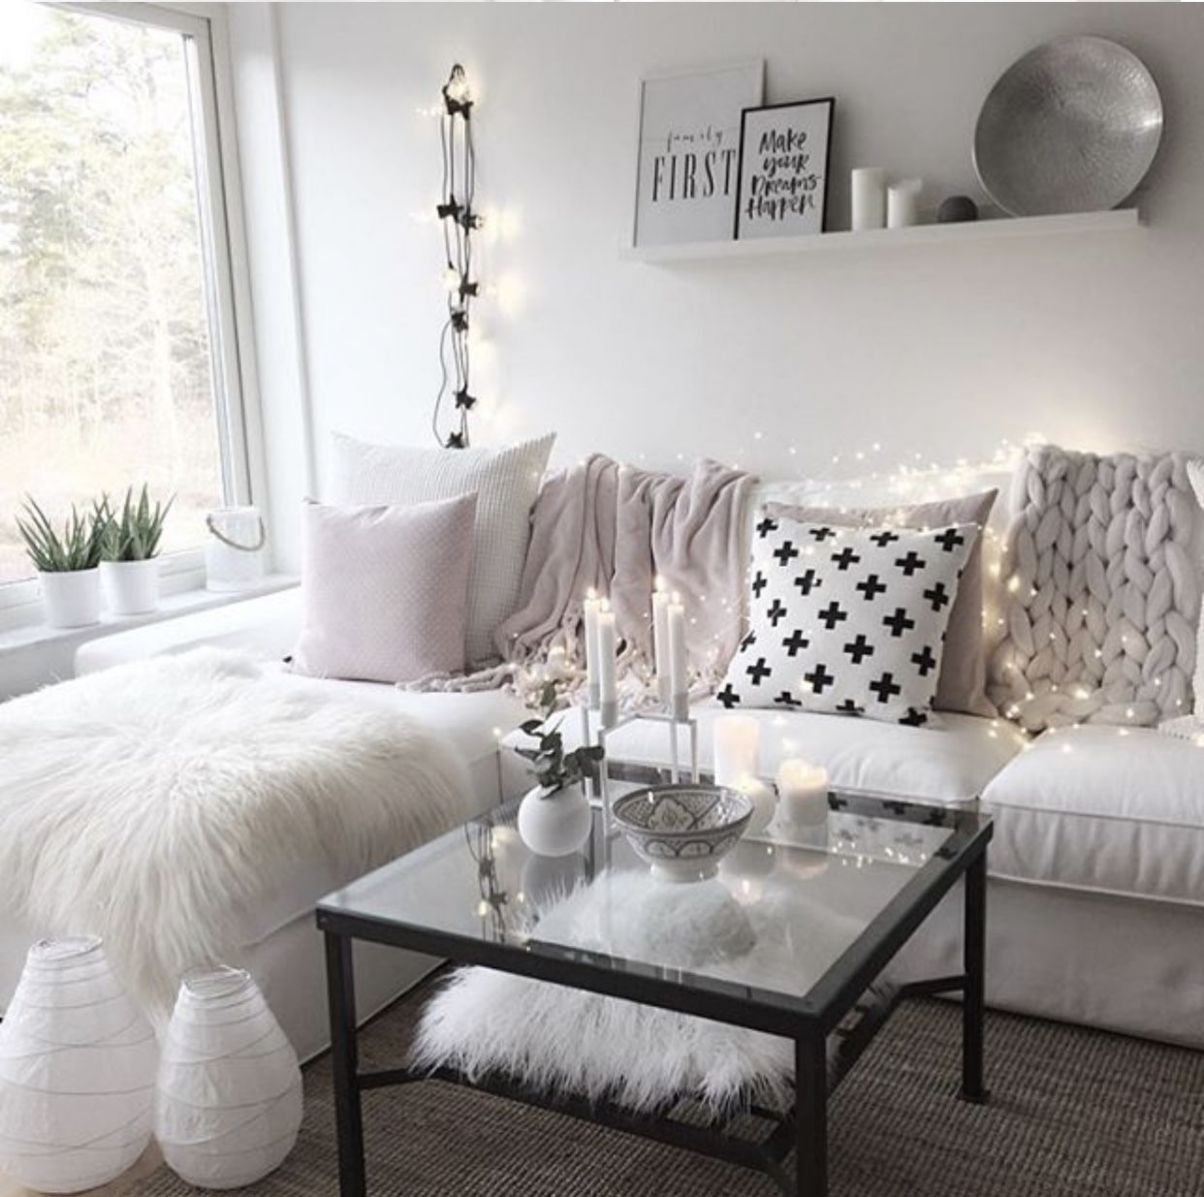 Girly living room/apartment idea (With images) | Girly living room ..